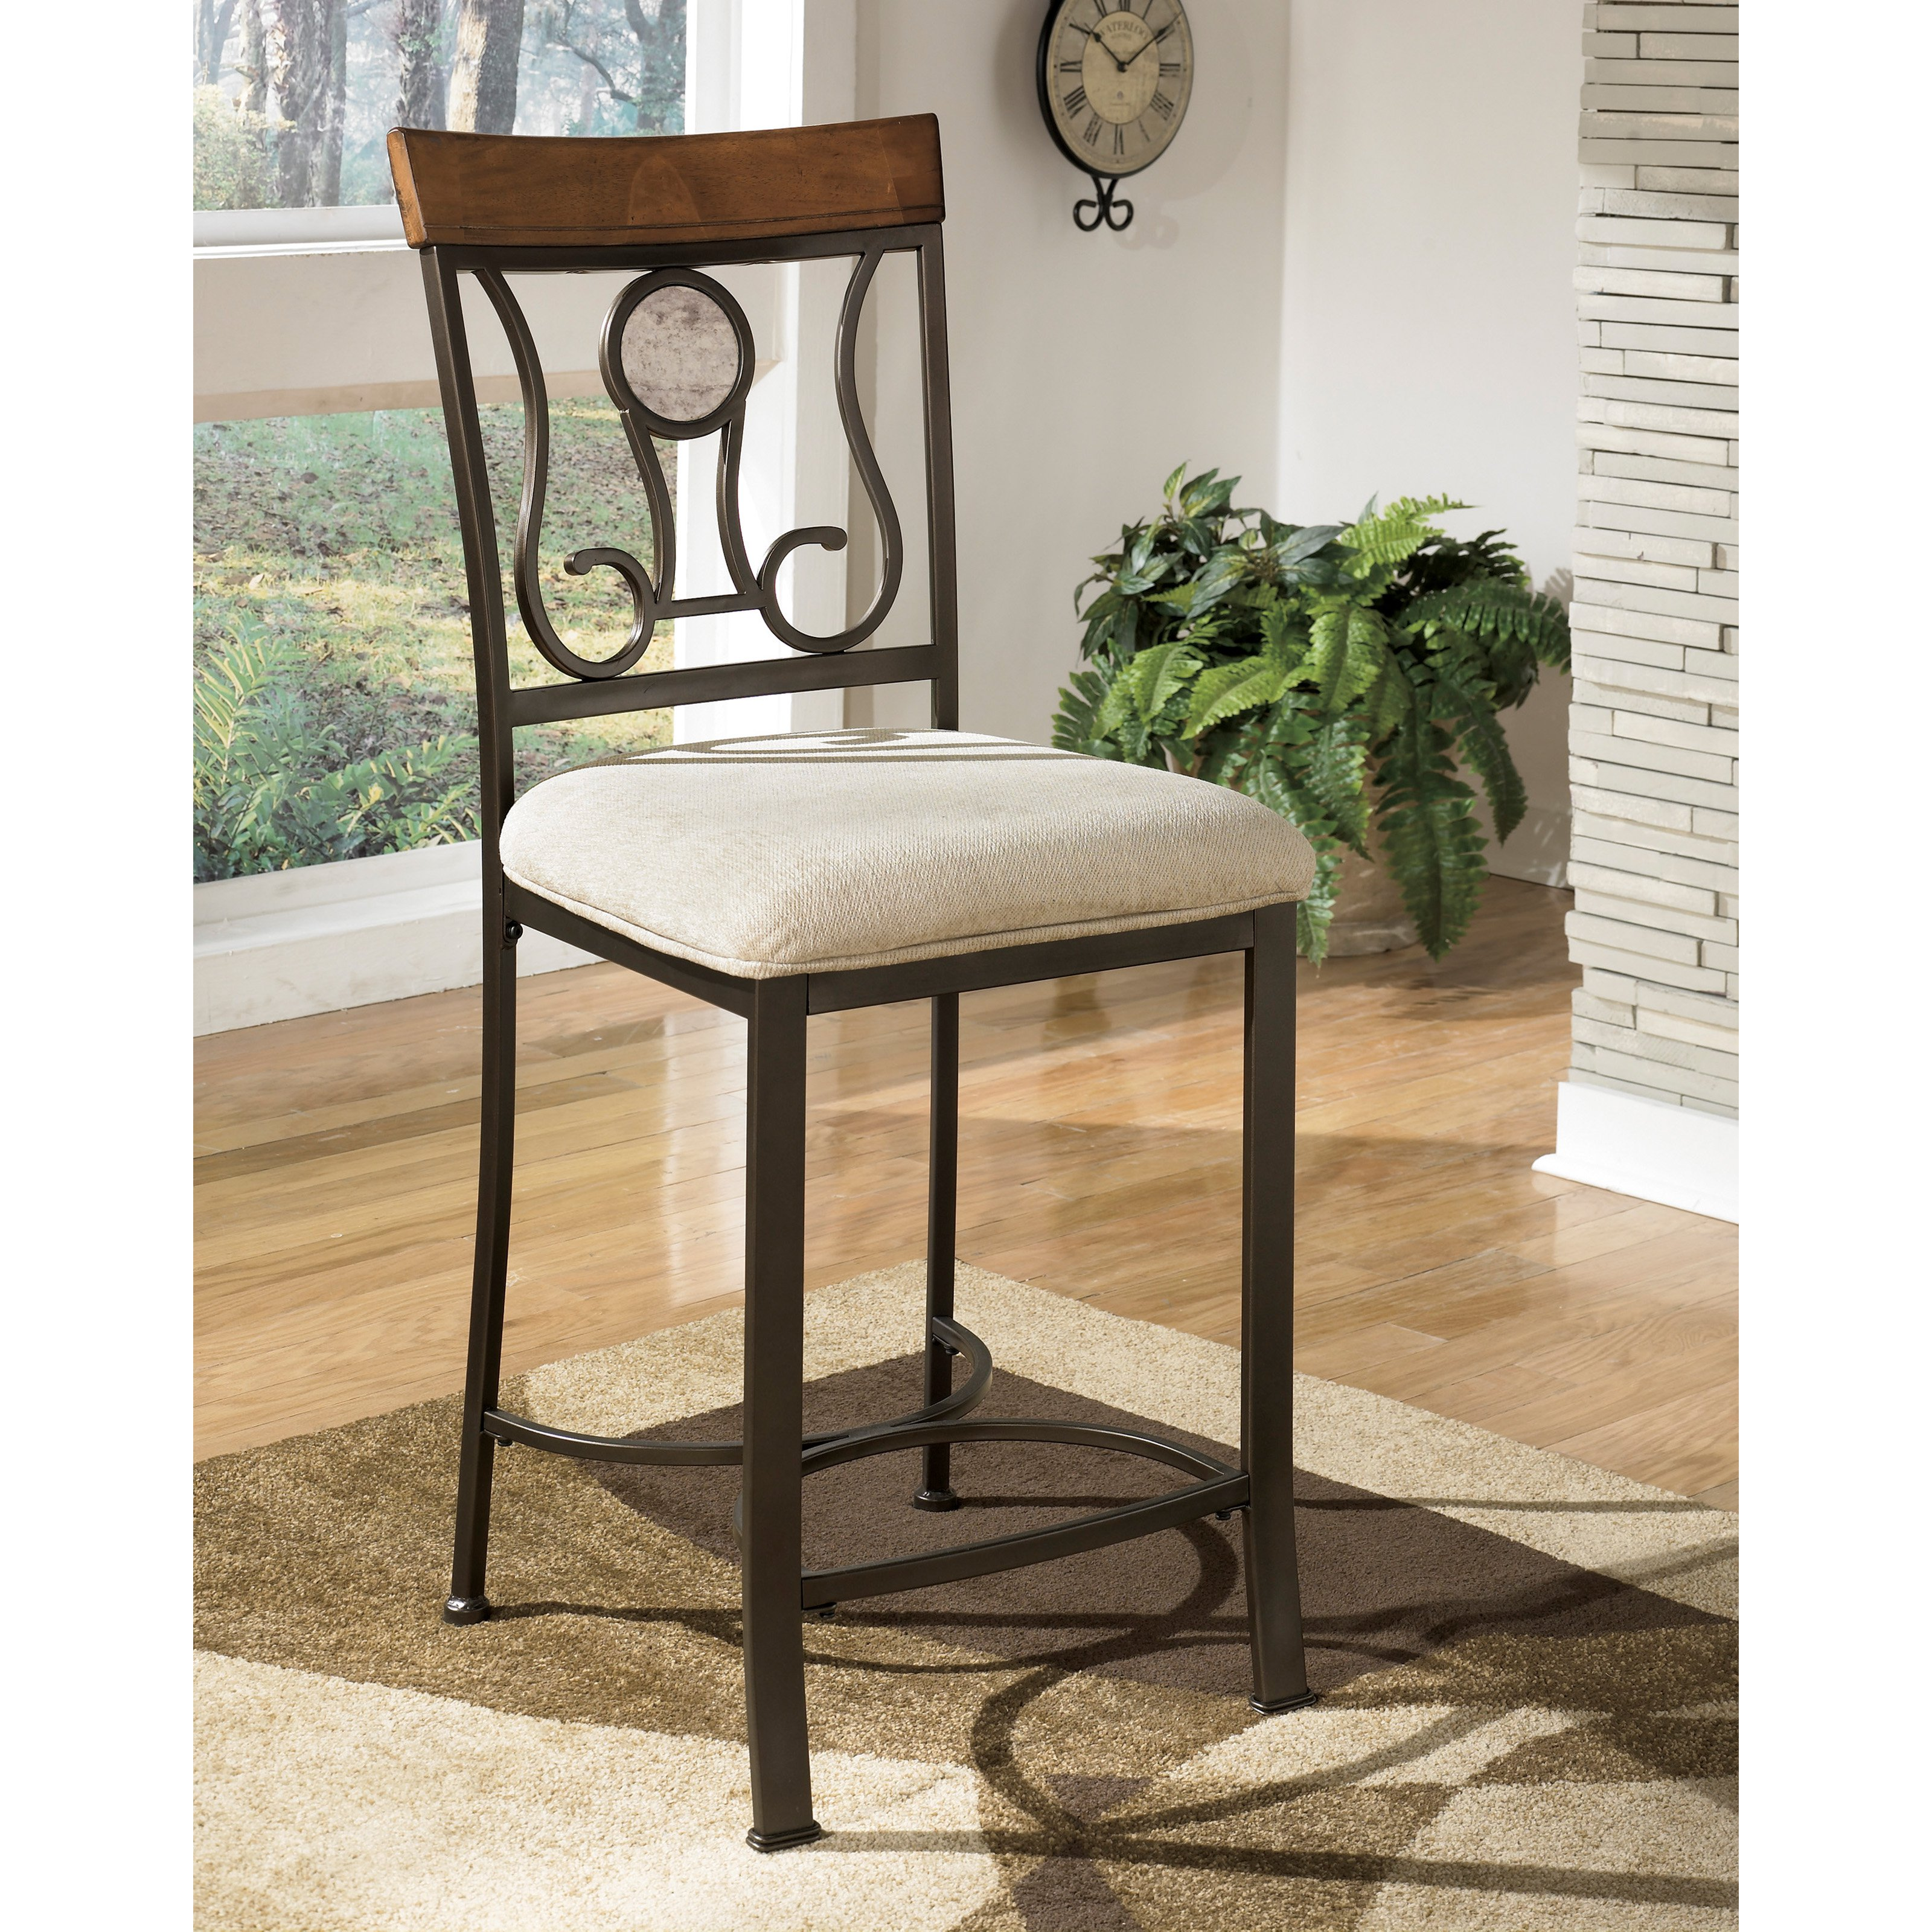 Signature Design by Ashley Maysville 5 Piece Counter Height Dining